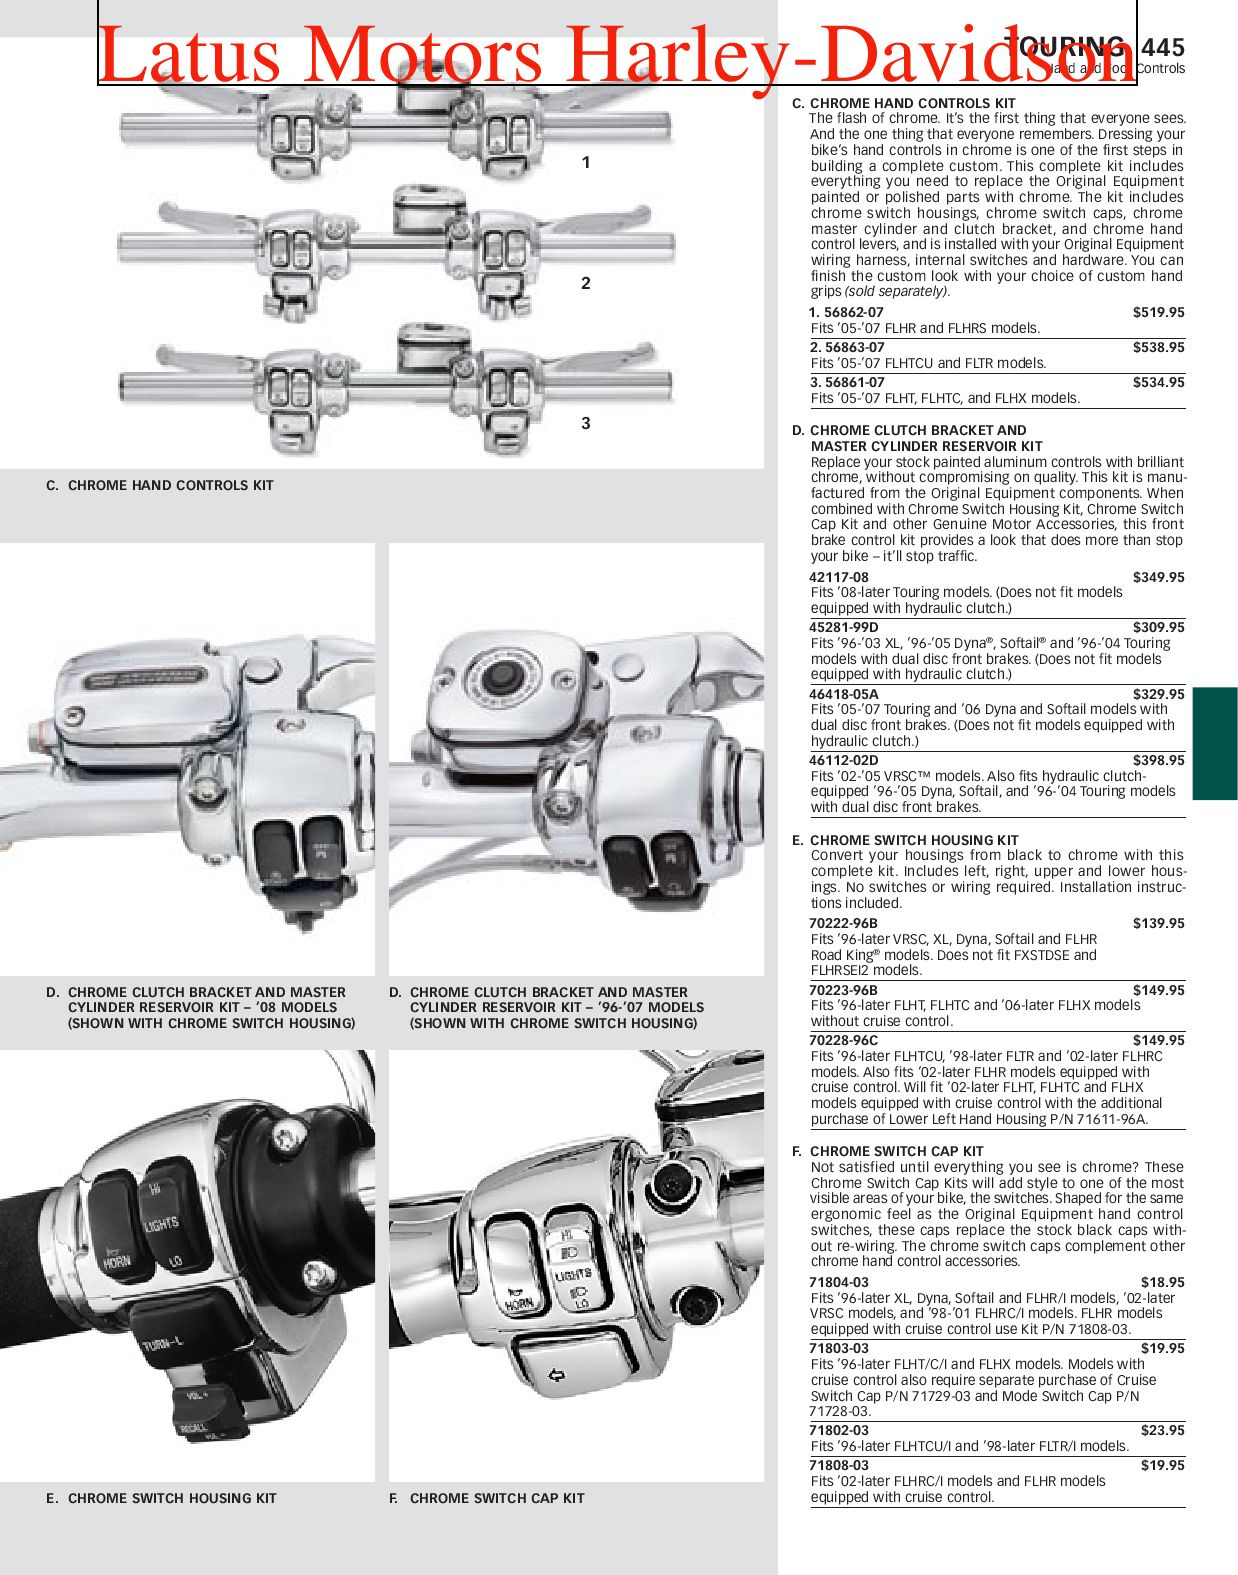 2013 Harley Heated Grips Wiring Diagram Part 2 Harley Davidson Parts And Accessories Catalog By